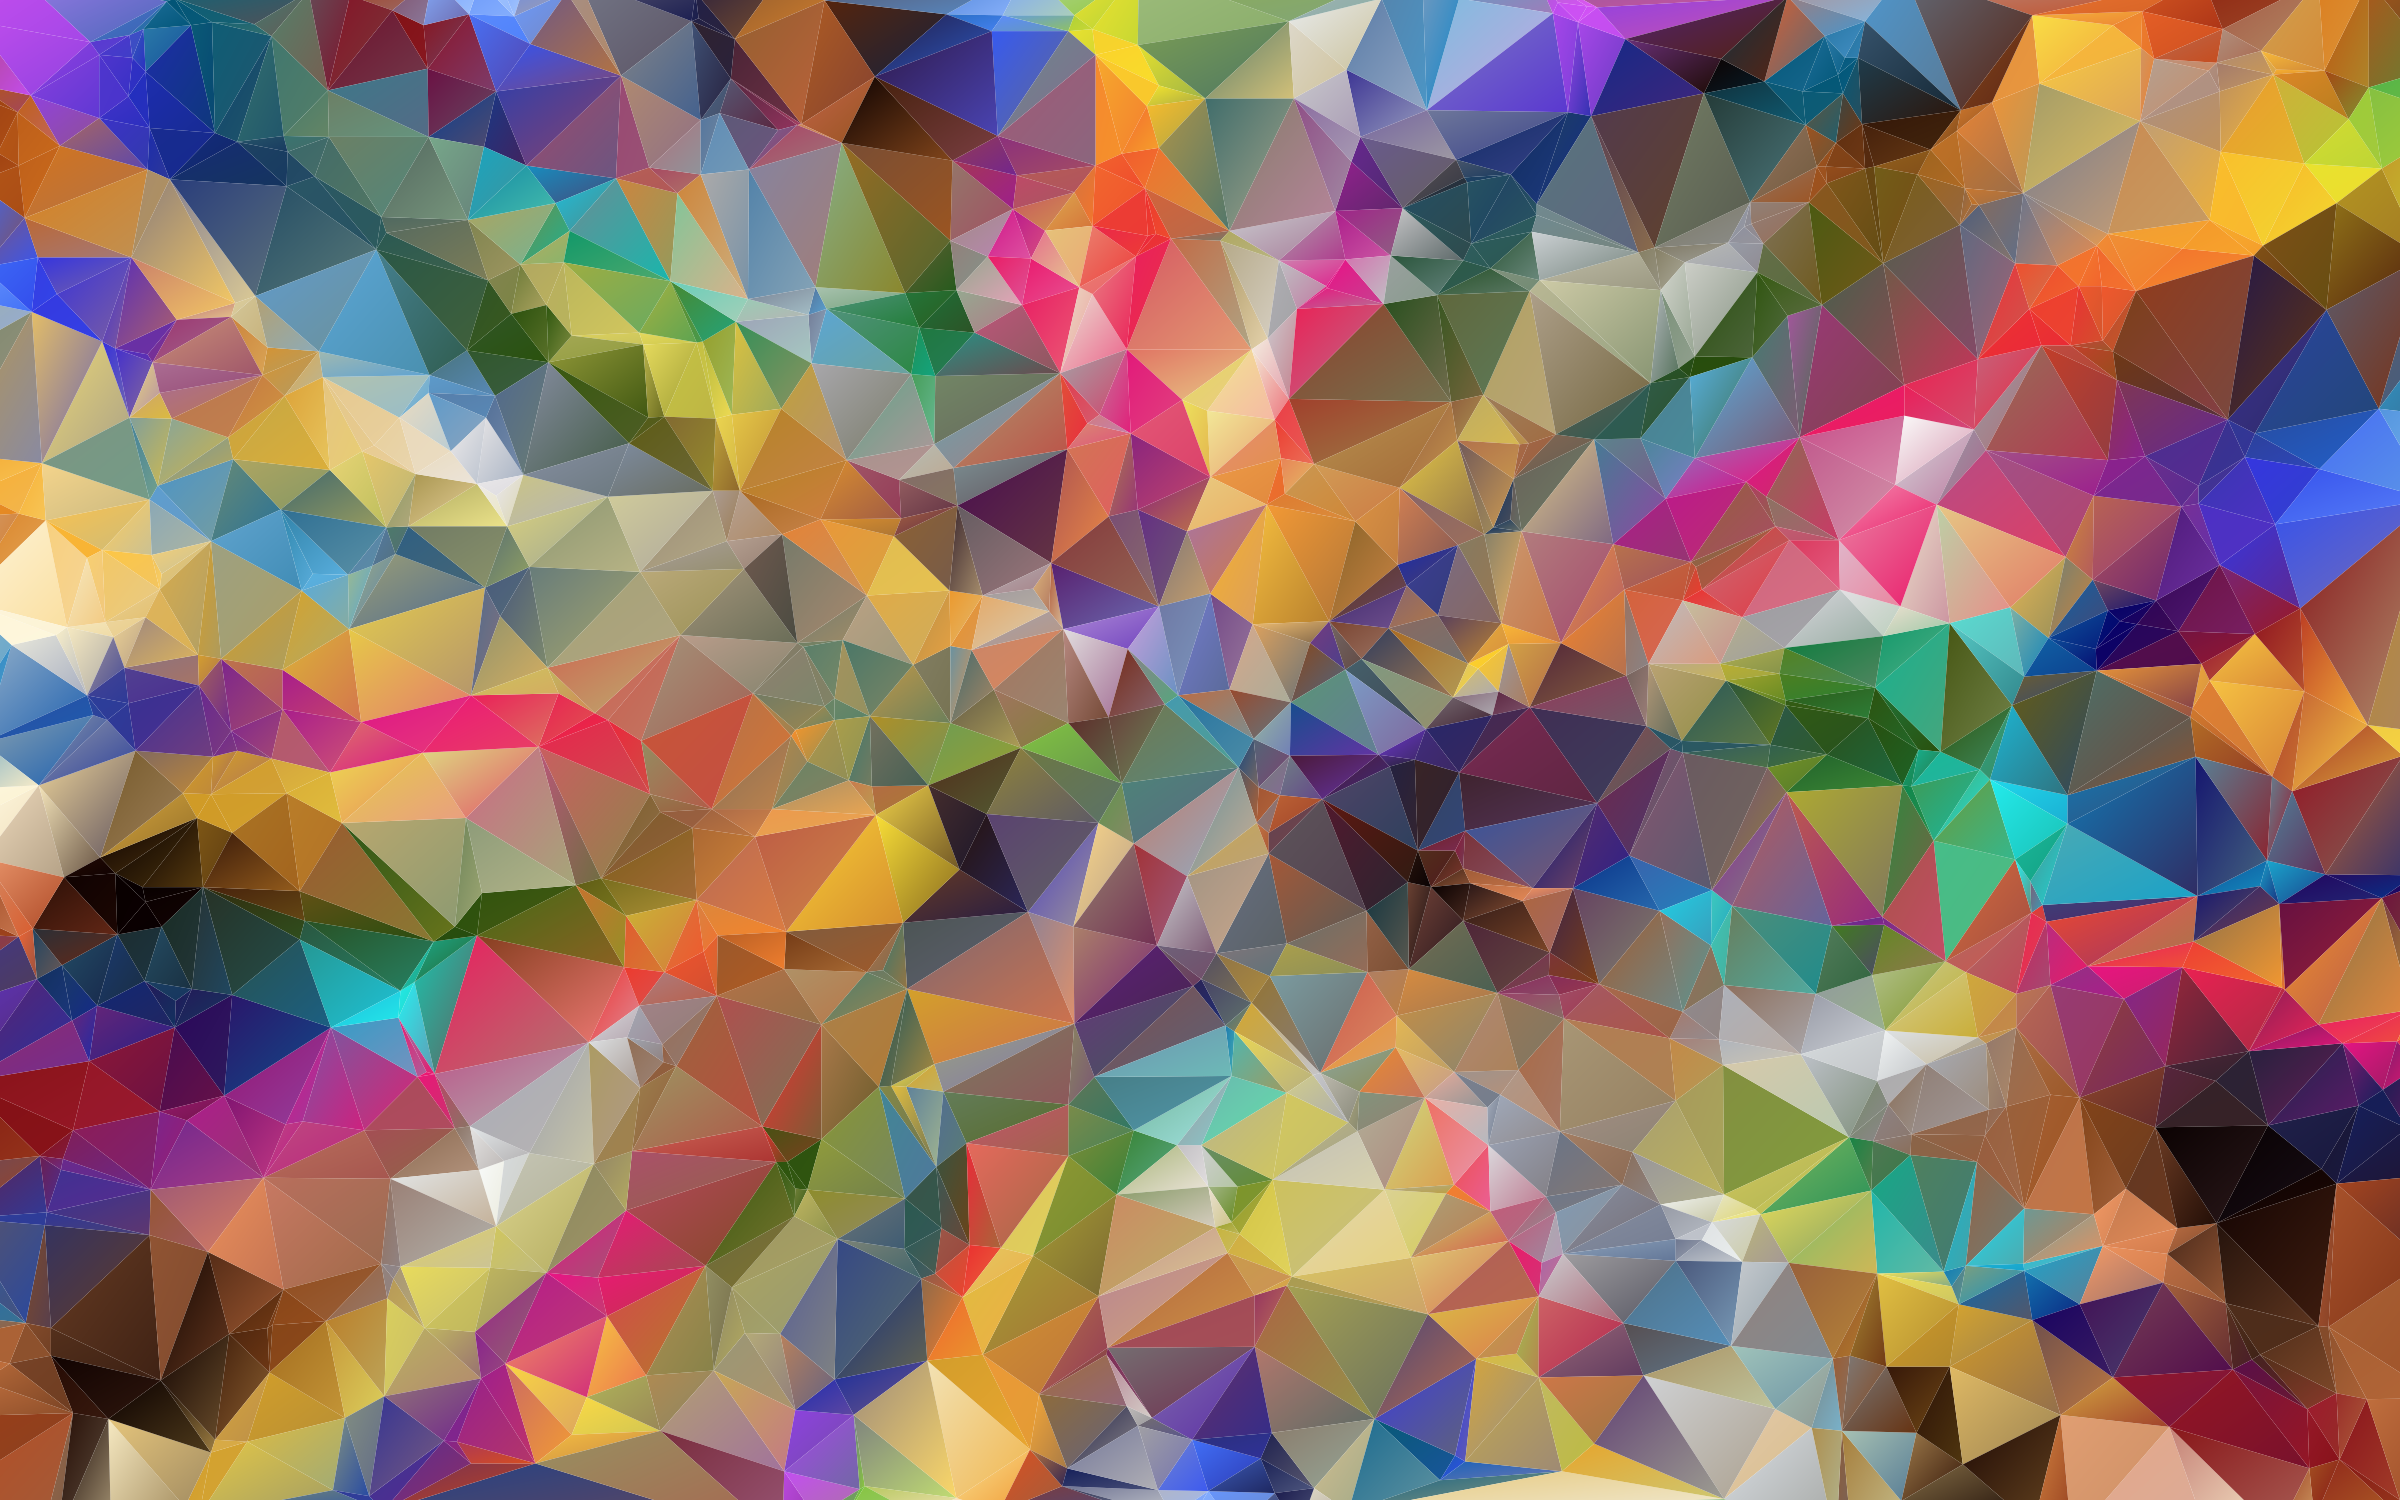 Clipart - Colorful Low Poly Wallpaper